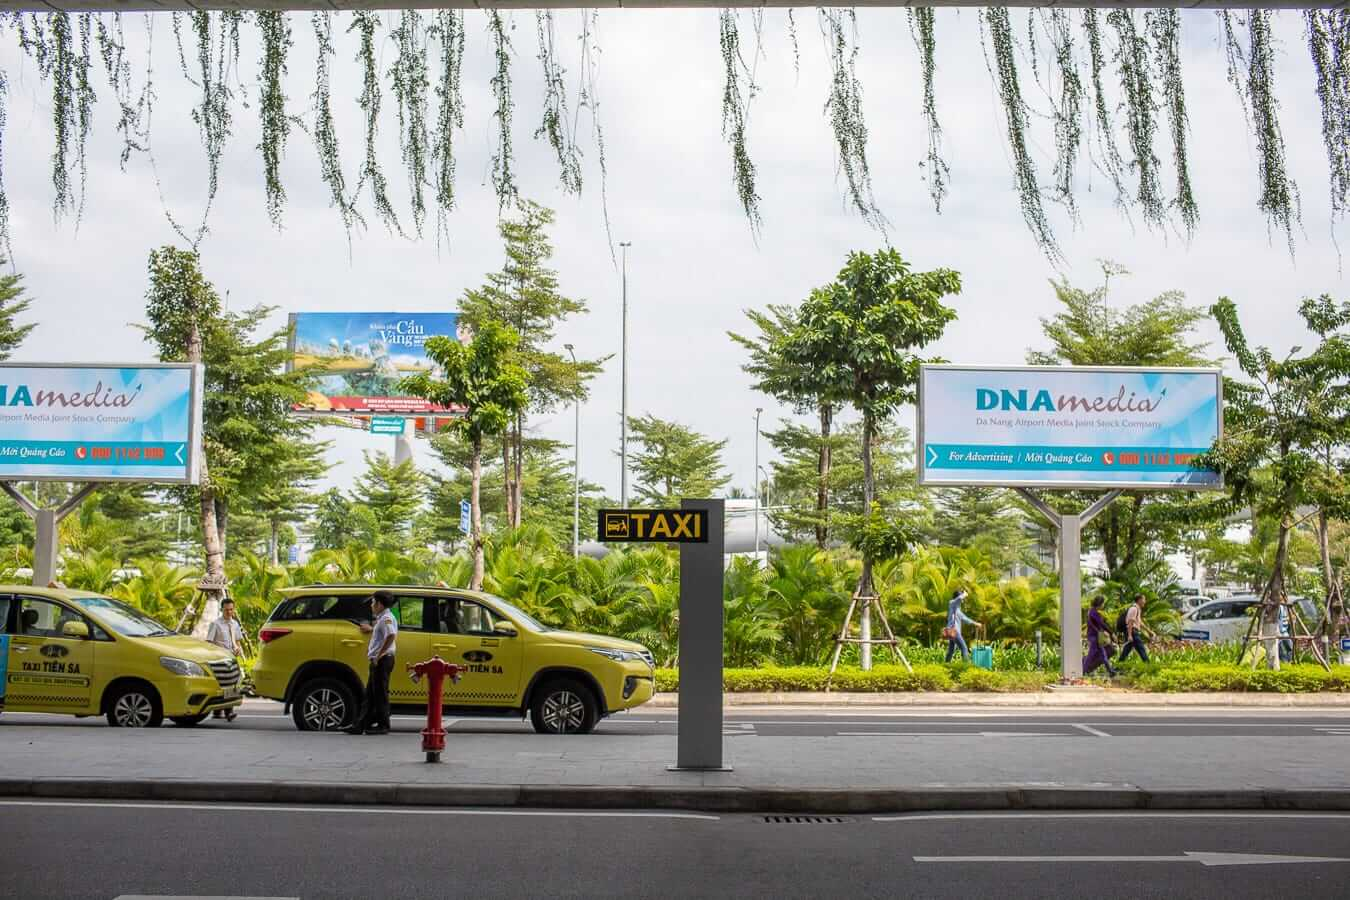 Taxi stand at the Da Nang airport